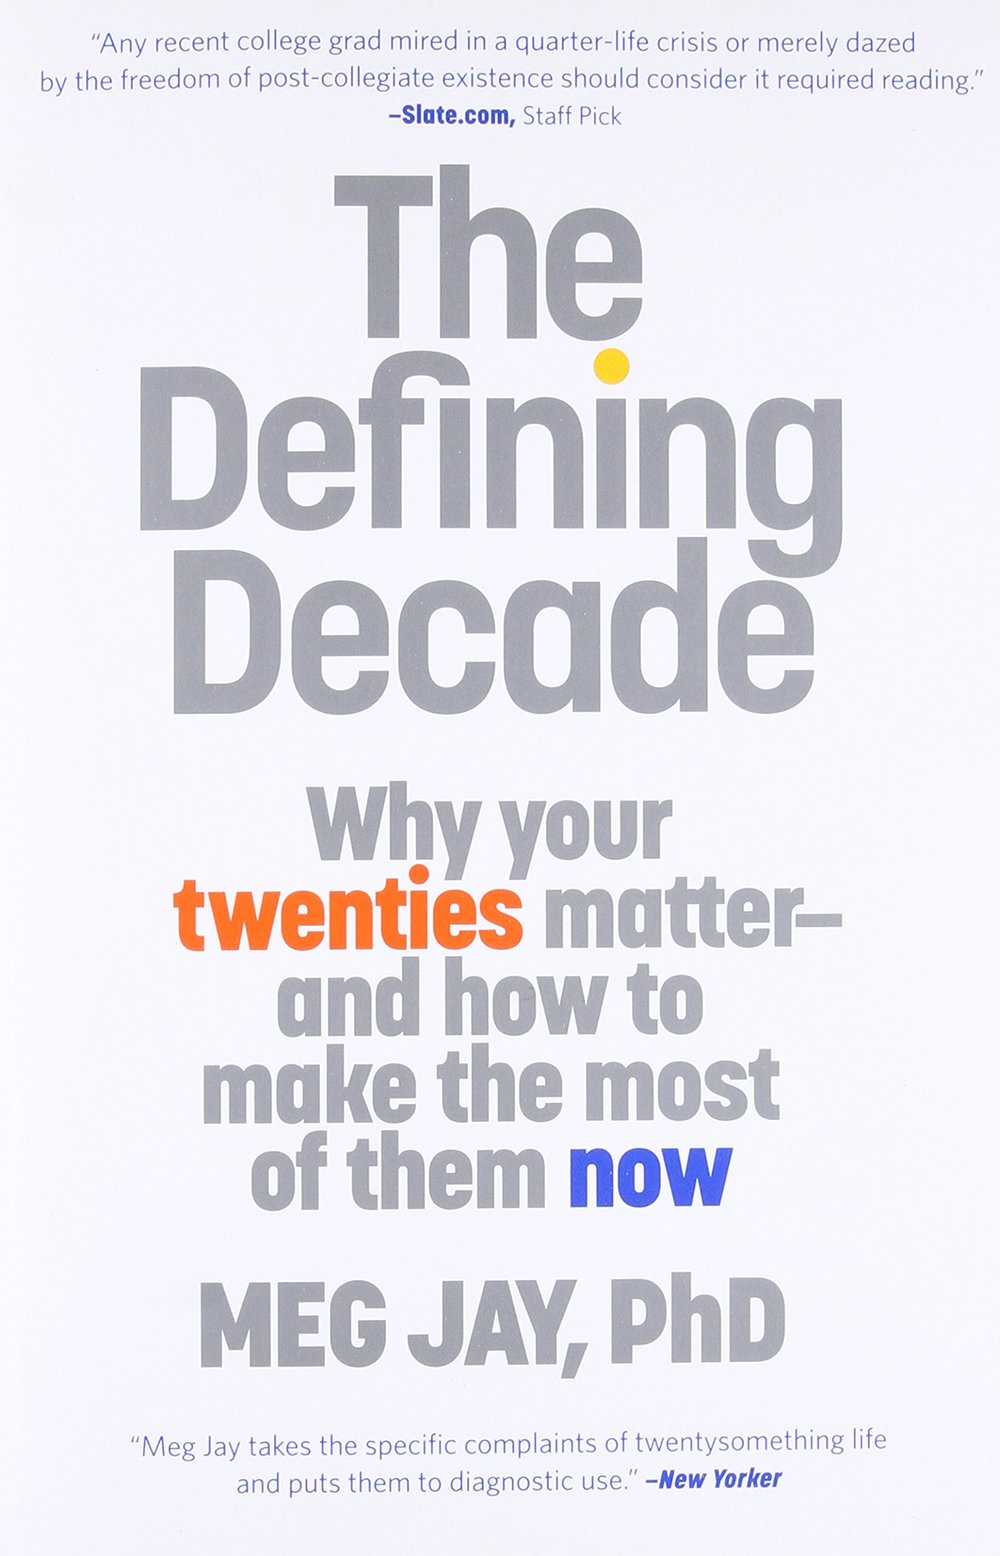 "Our ""30-is-the-new-20"" culture tells us that the twentysomething years don't matter. Some say they are an extended adolescence. Others call them an emerging adulthood. But 30 is not the new 20. In this enlightening book, Dr. Meg Jay reveals how many twentysomethings have been caught in a swirl of hype and misinformation that has trivialized what are actually the most defining years of adulthood."